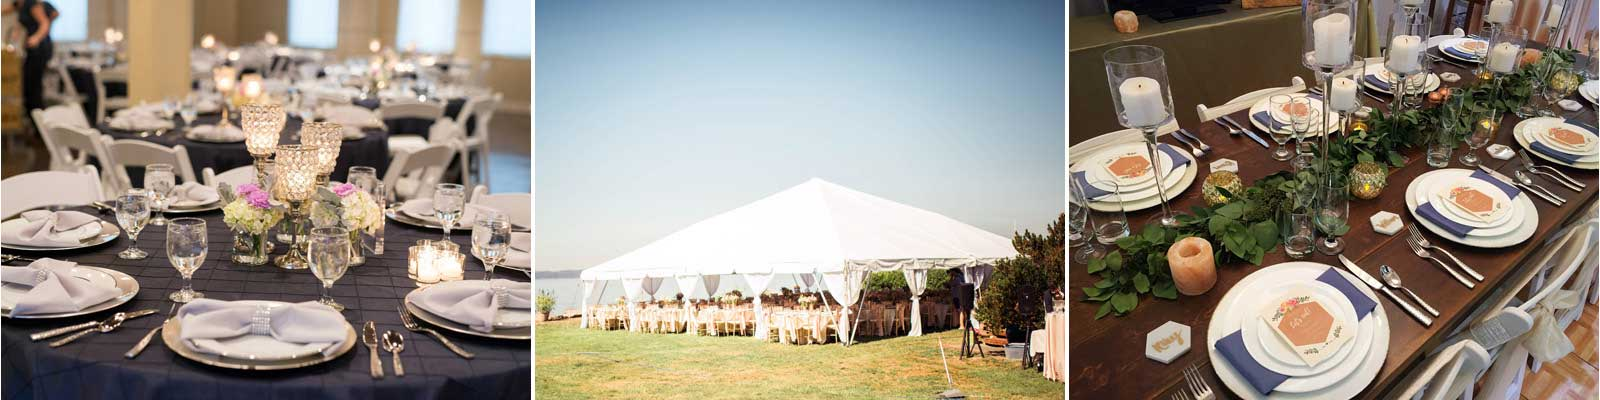 Wedding rentals in the Greater South Sound Region